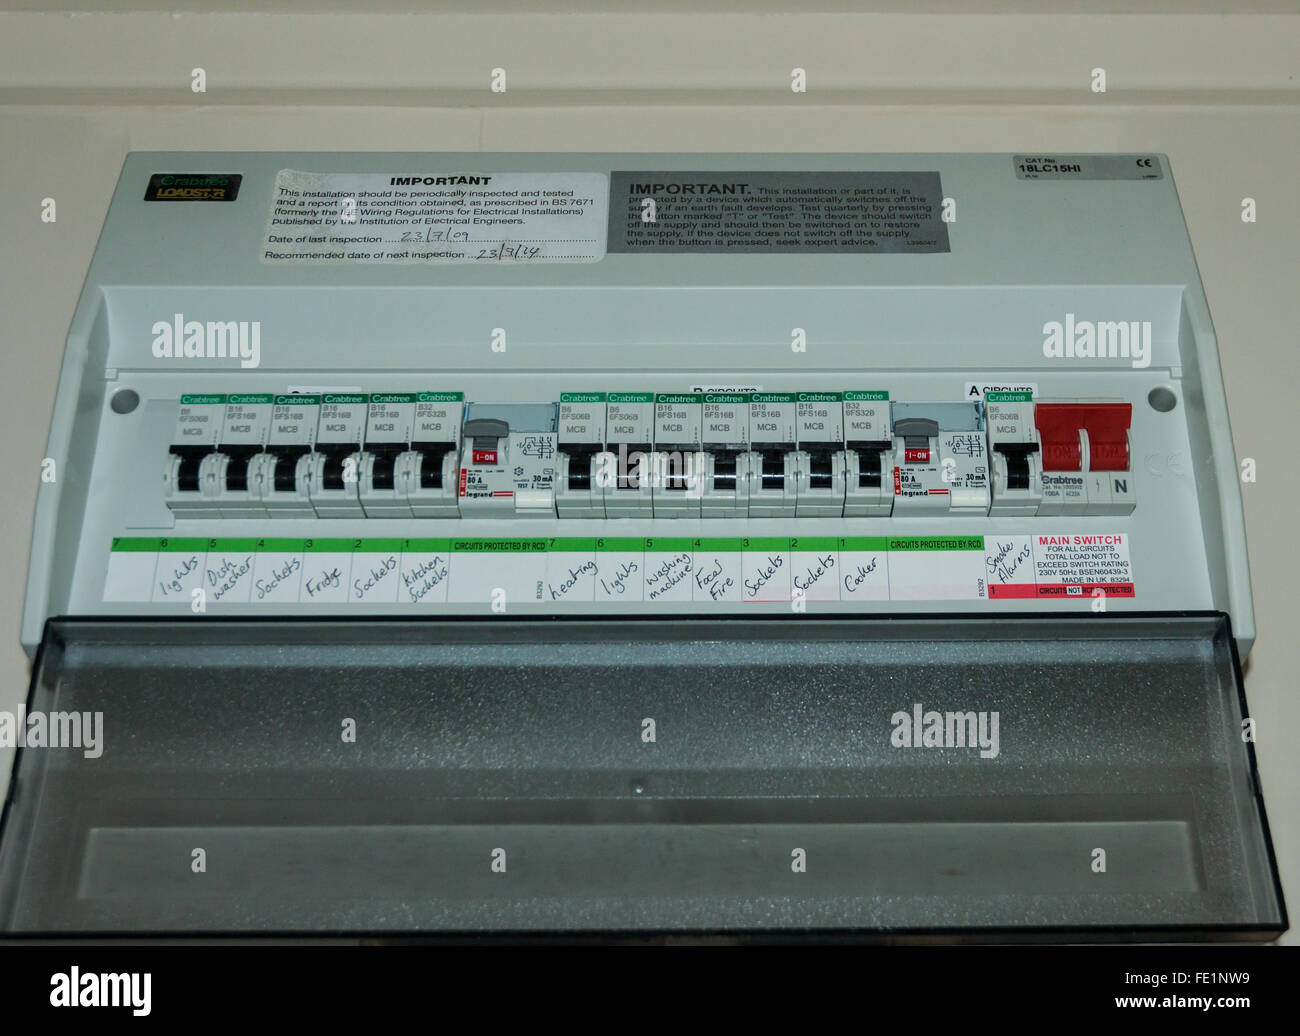 hight resolution of electrical fuse box wiring diagram centre fuse box electrical helensburgh fuse box electric